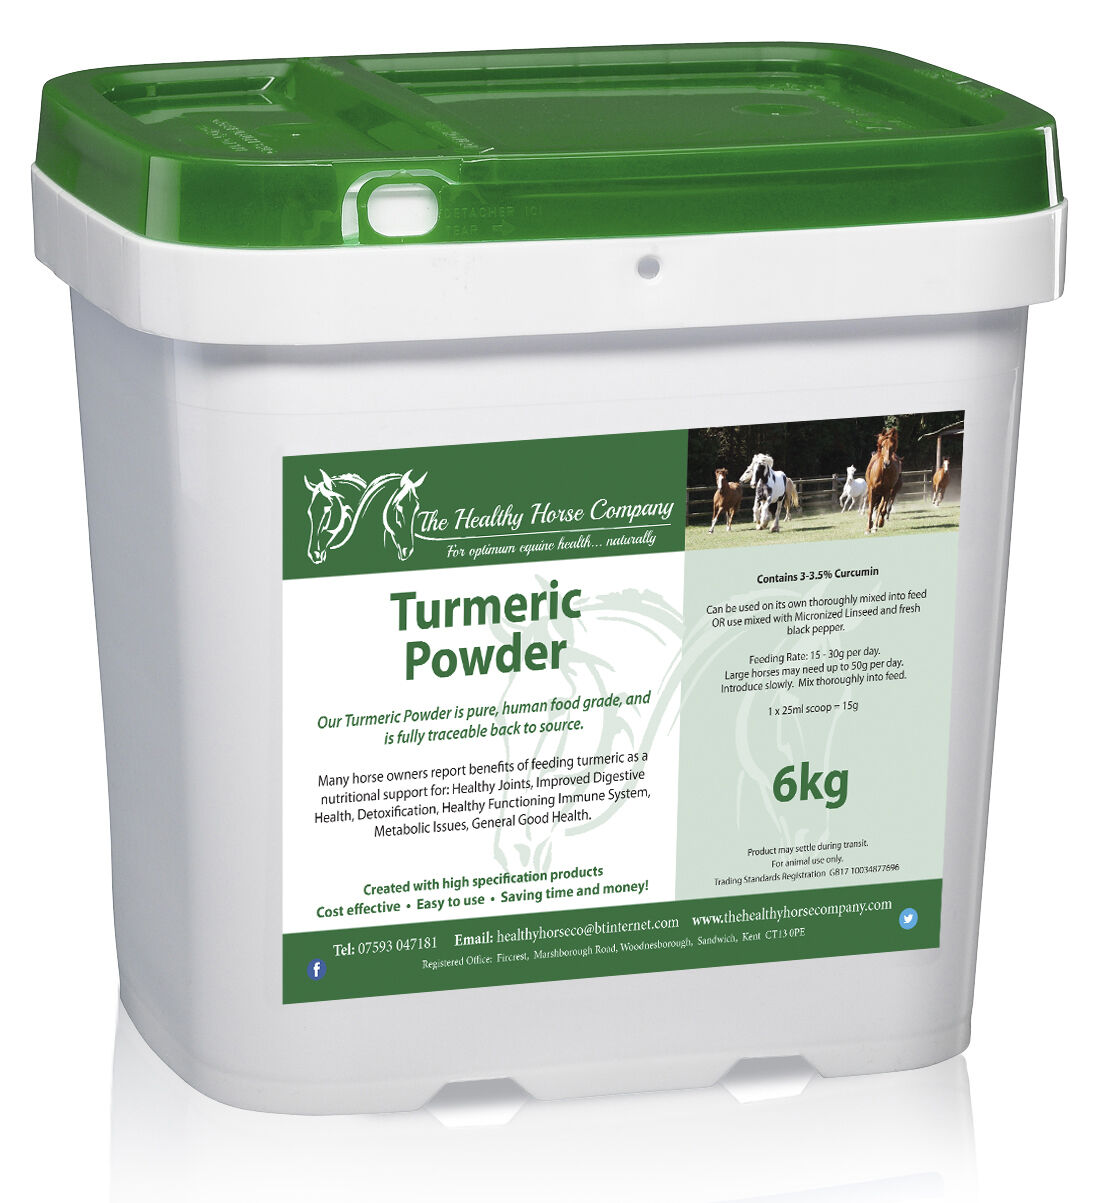 Turmeric Powder 6kg Refill - contains 3-3.5% Curcumin - (Immune System, Joints)